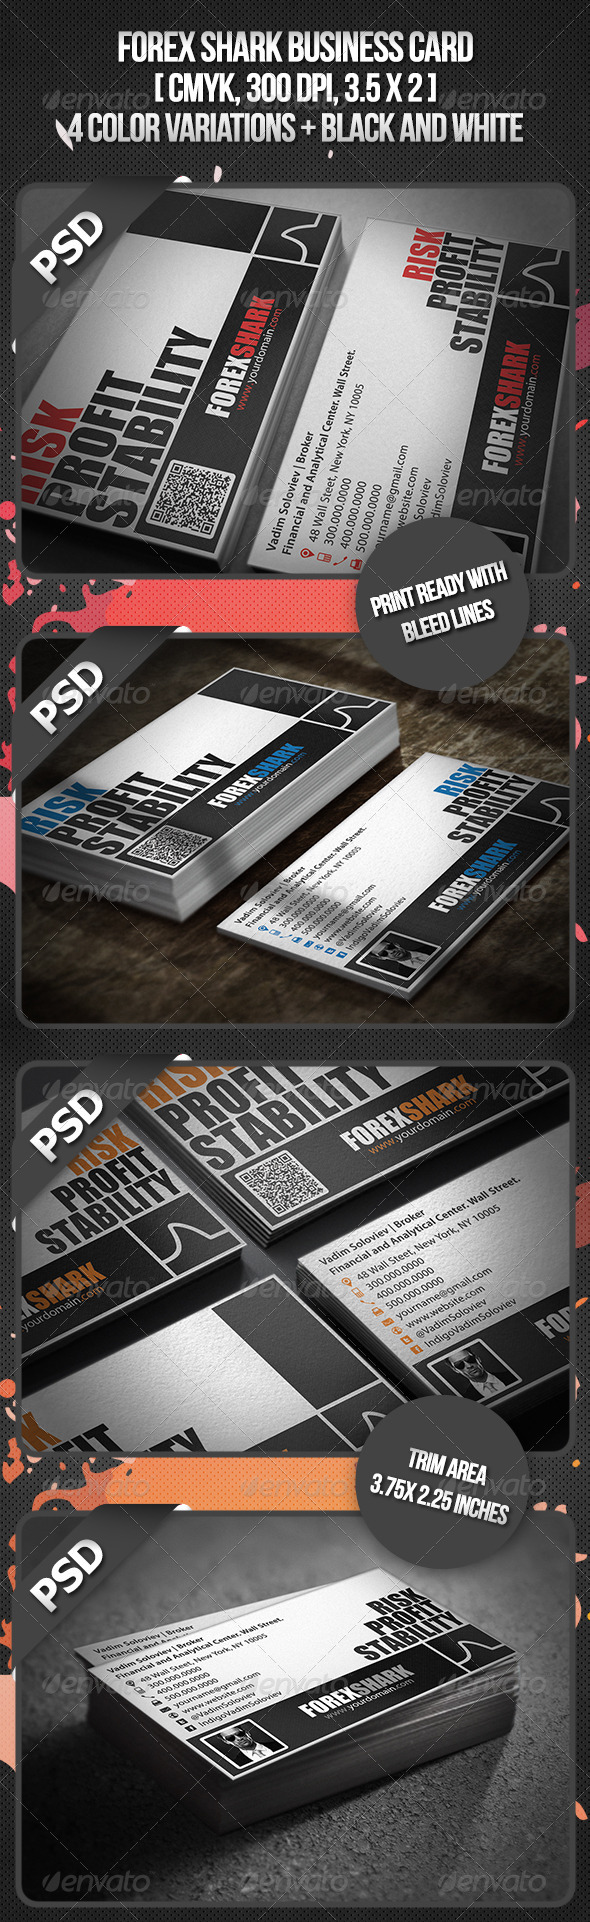 Forex Shark Business Card - Creative Business Cards